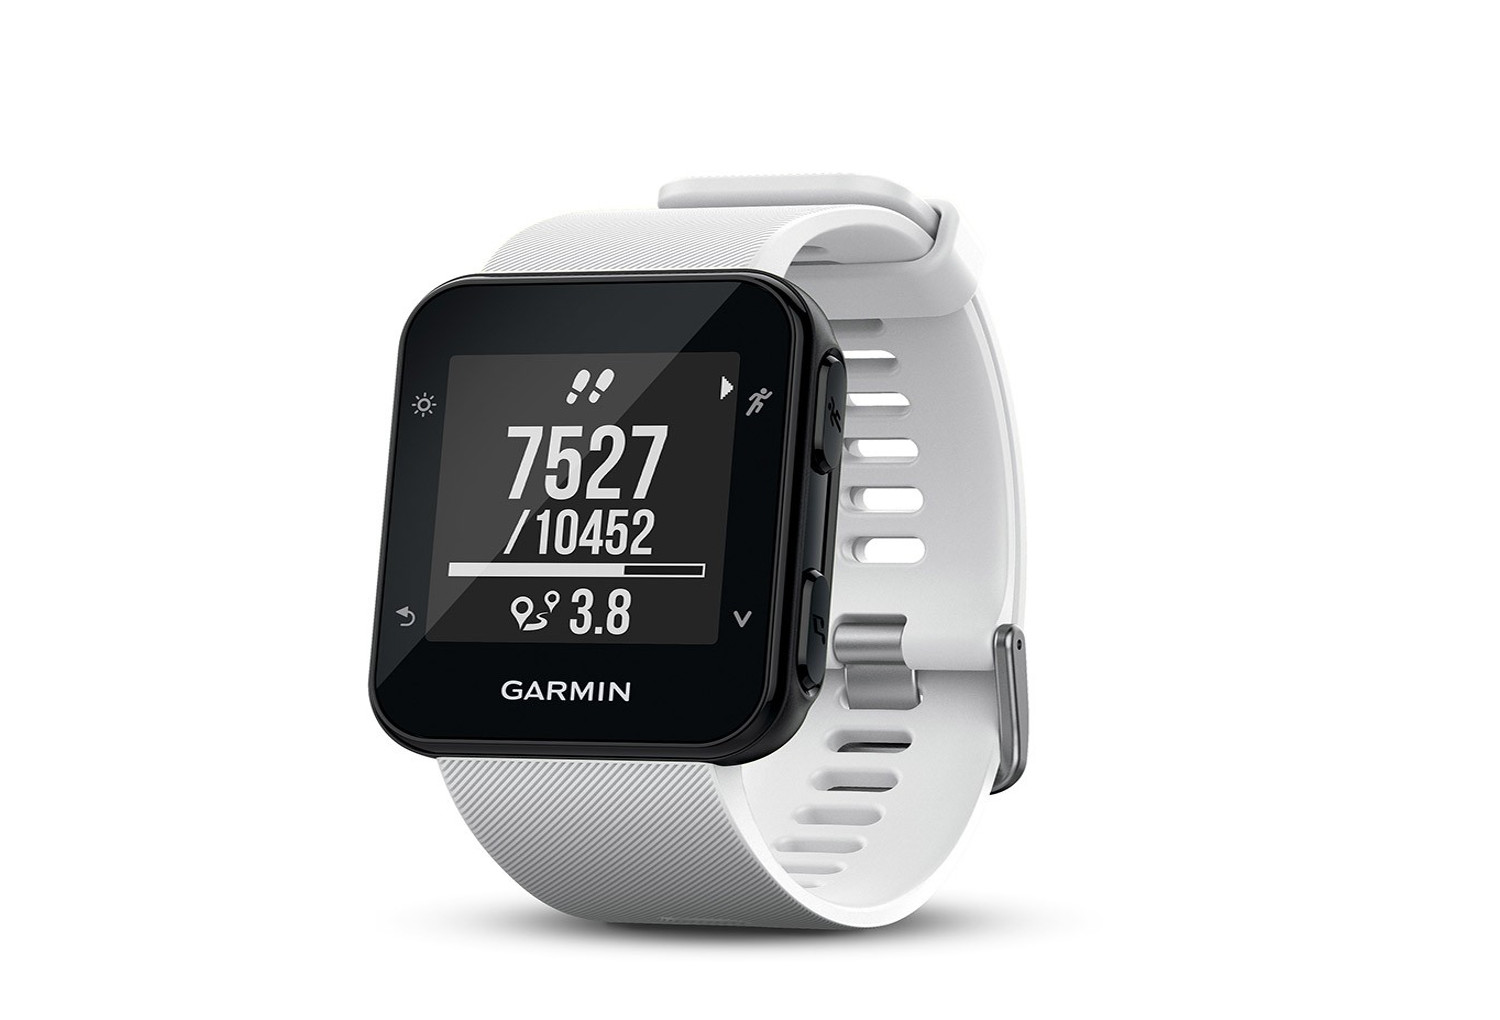 garmin uhr gps forerunner 35 hr white. Black Bedroom Furniture Sets. Home Design Ideas